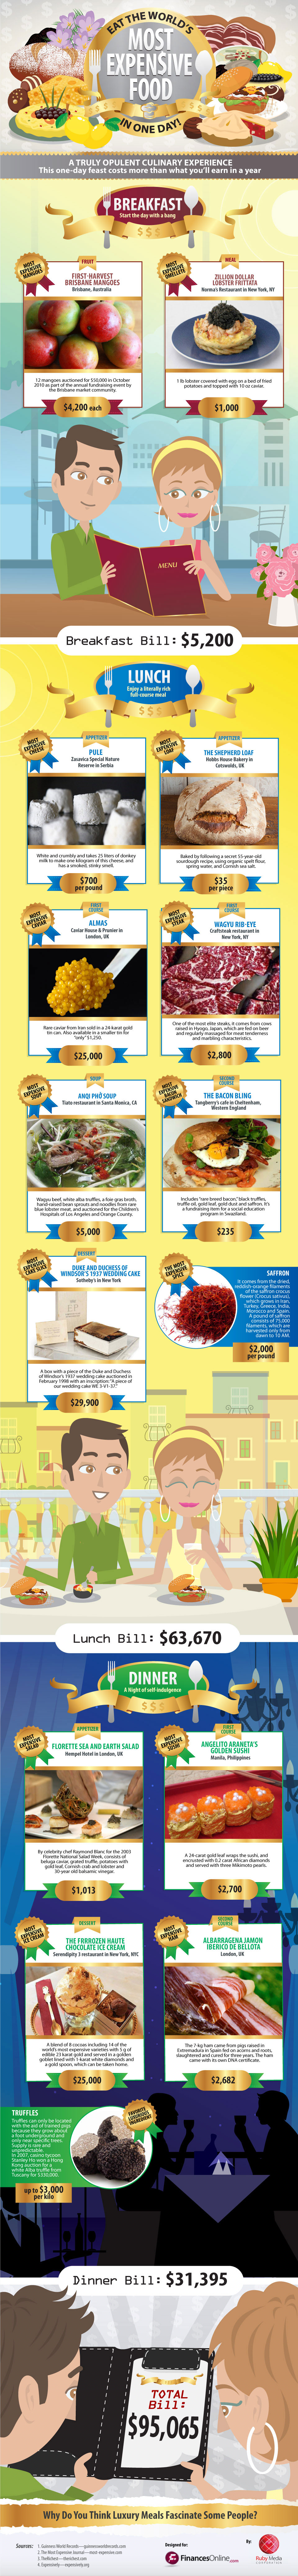 Most Expensive Foods – A Neat Infographic from @Fi